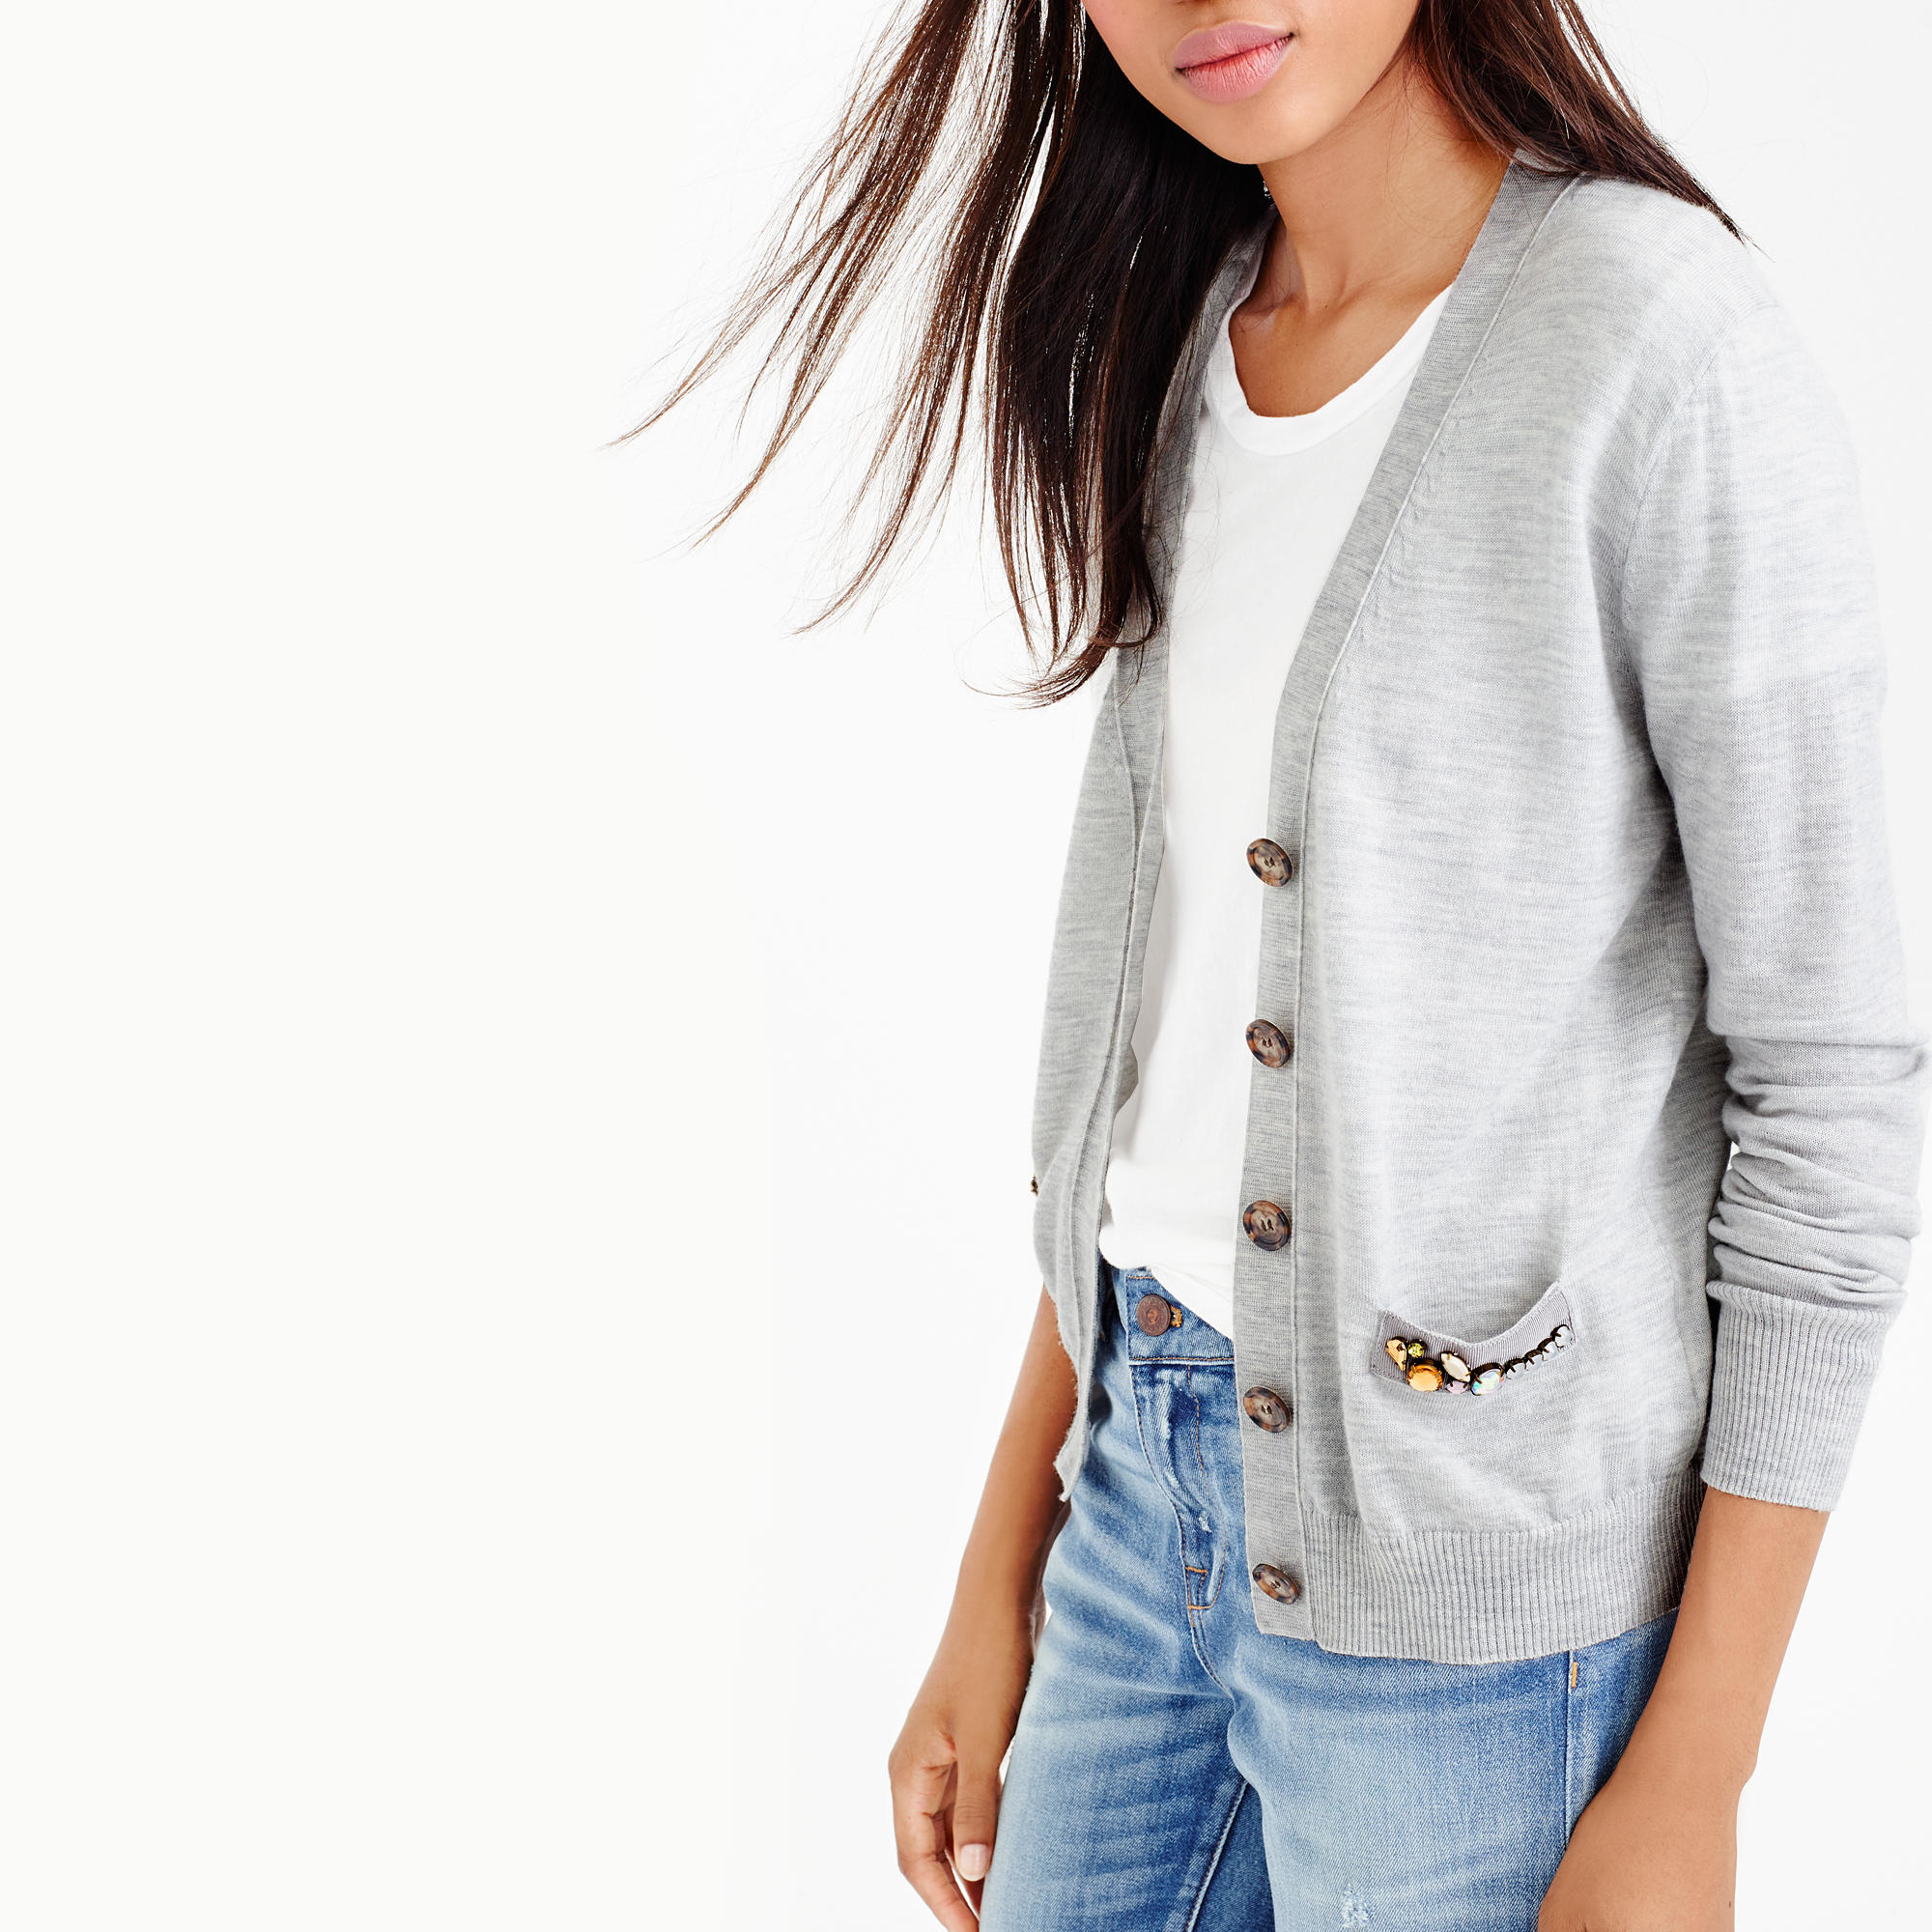 6bd8e49048 Lyst - J.Crew V-neck Cardigan Sweater With Embellished Pocket in Gray